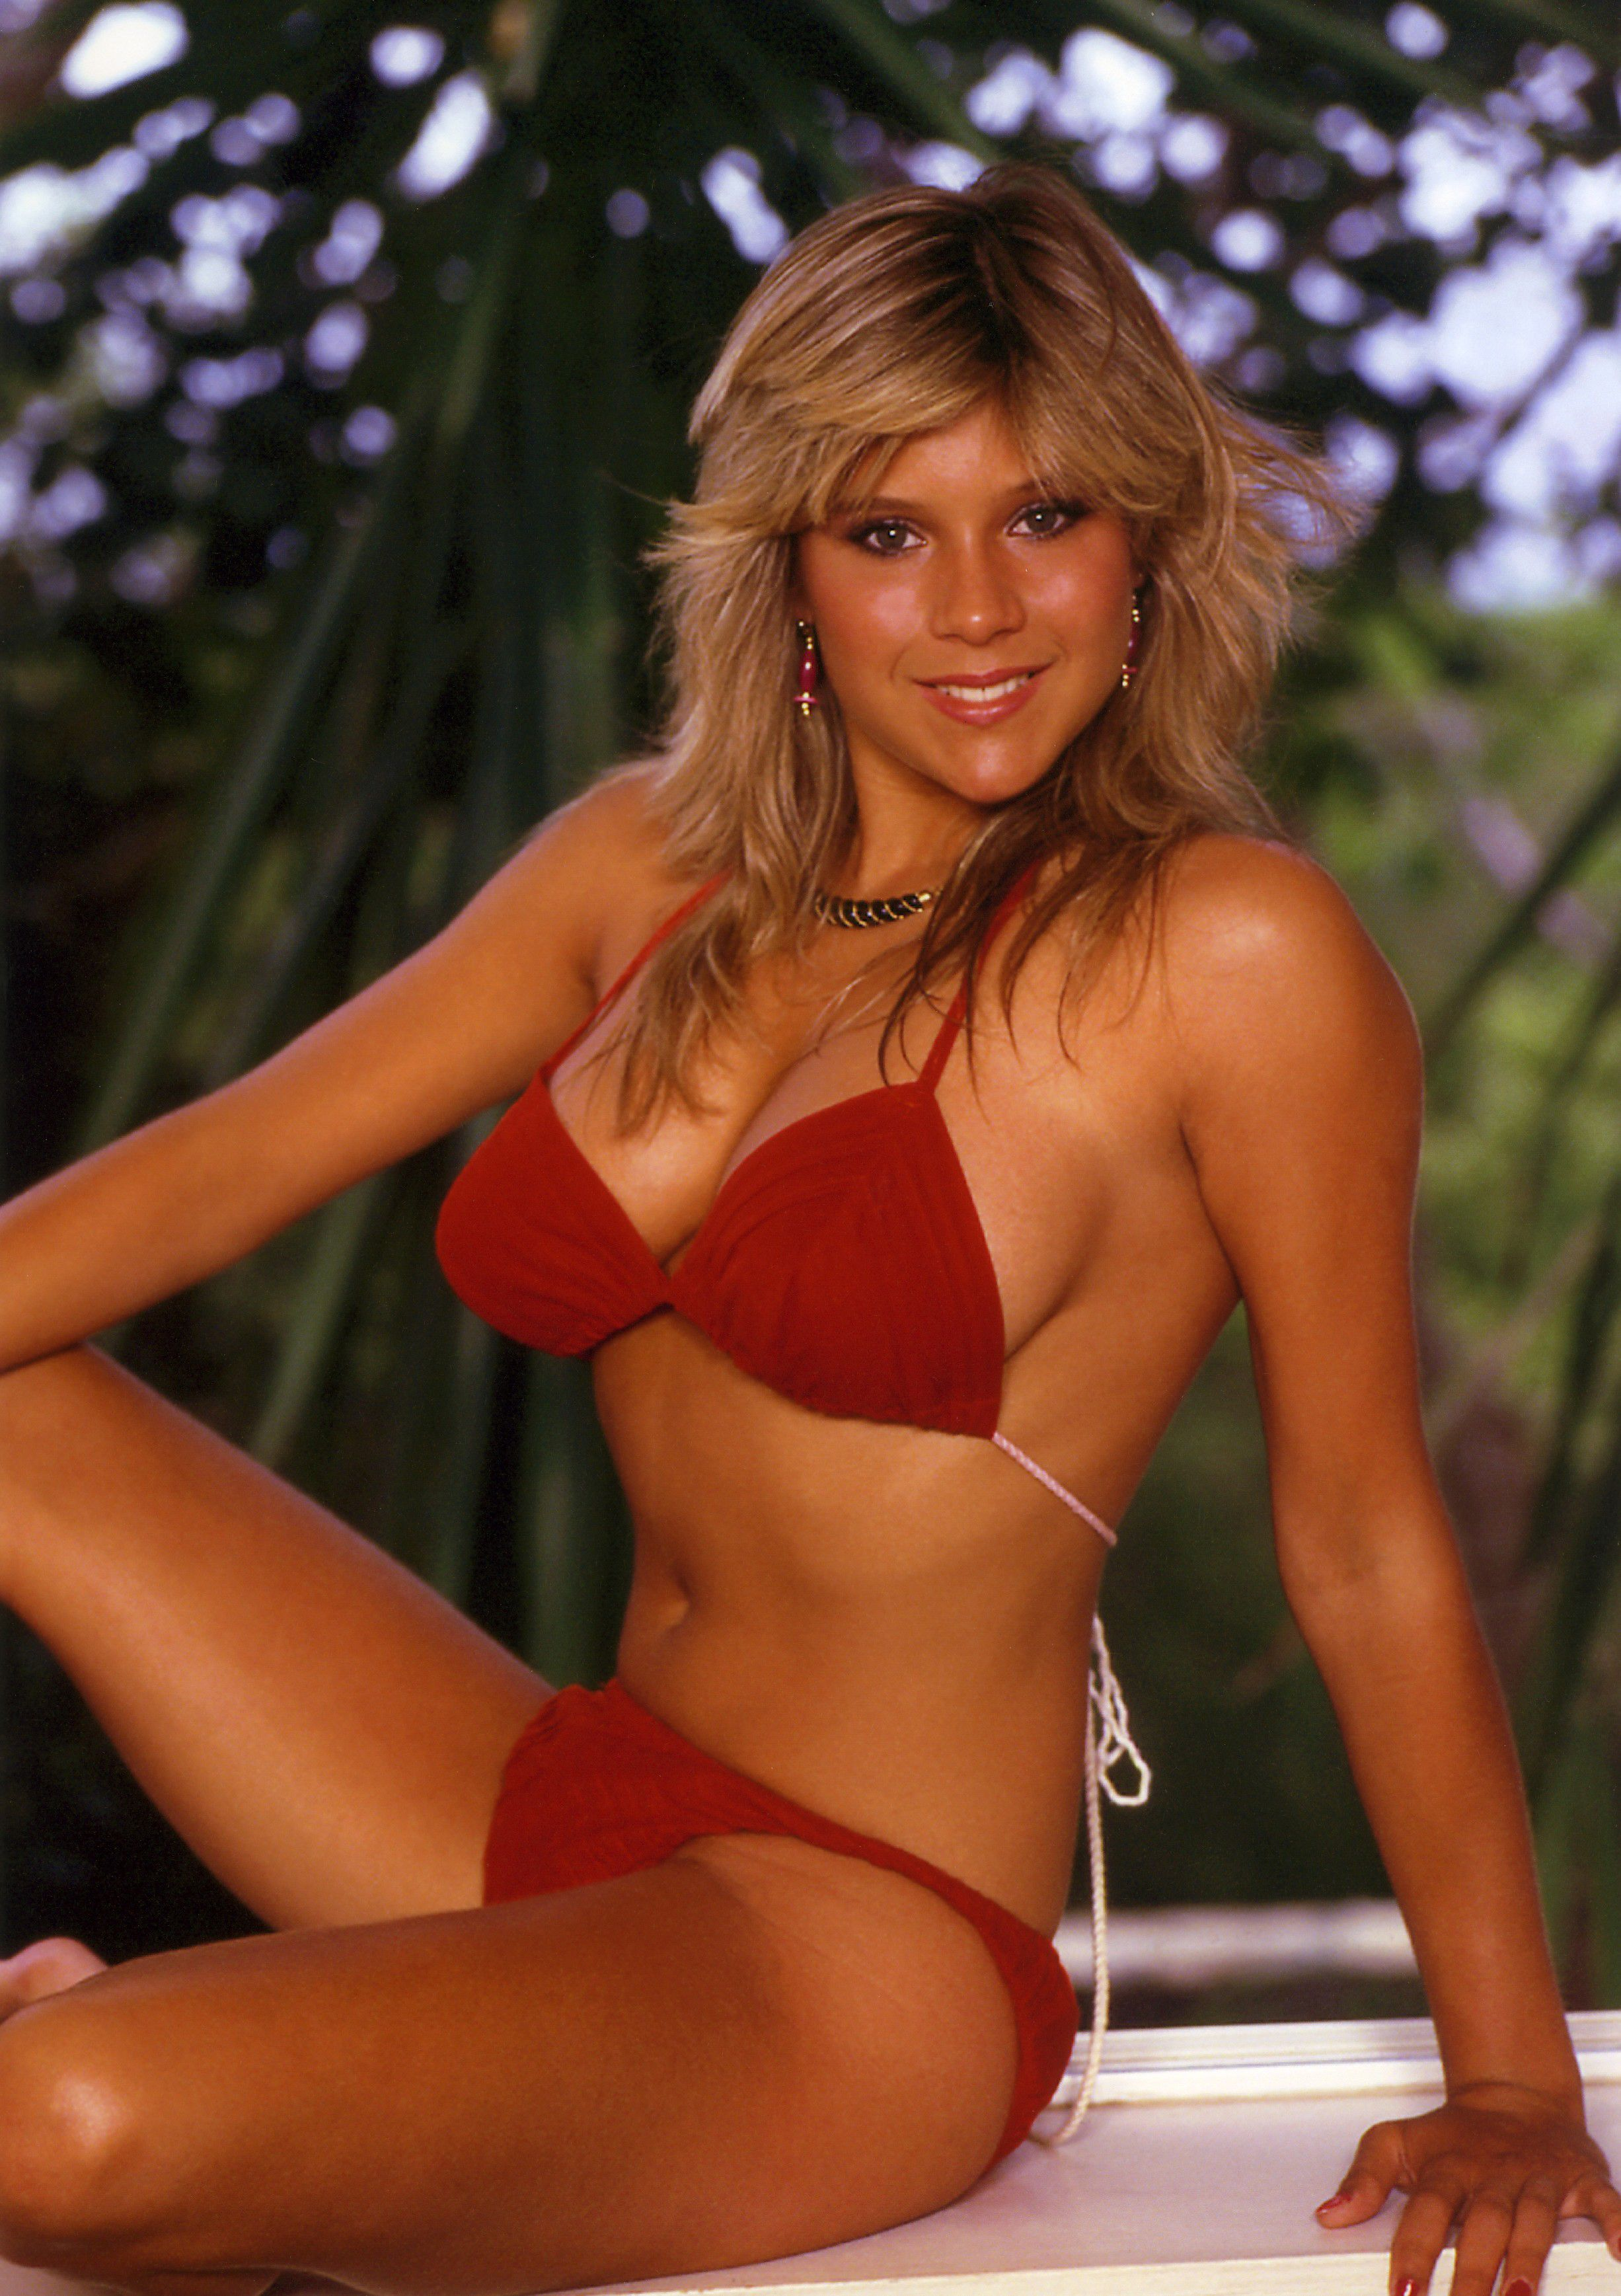 Bikini Samantha Fox naked (15 photo), Sexy, Sideboobs, Boobs, in bikini 2020